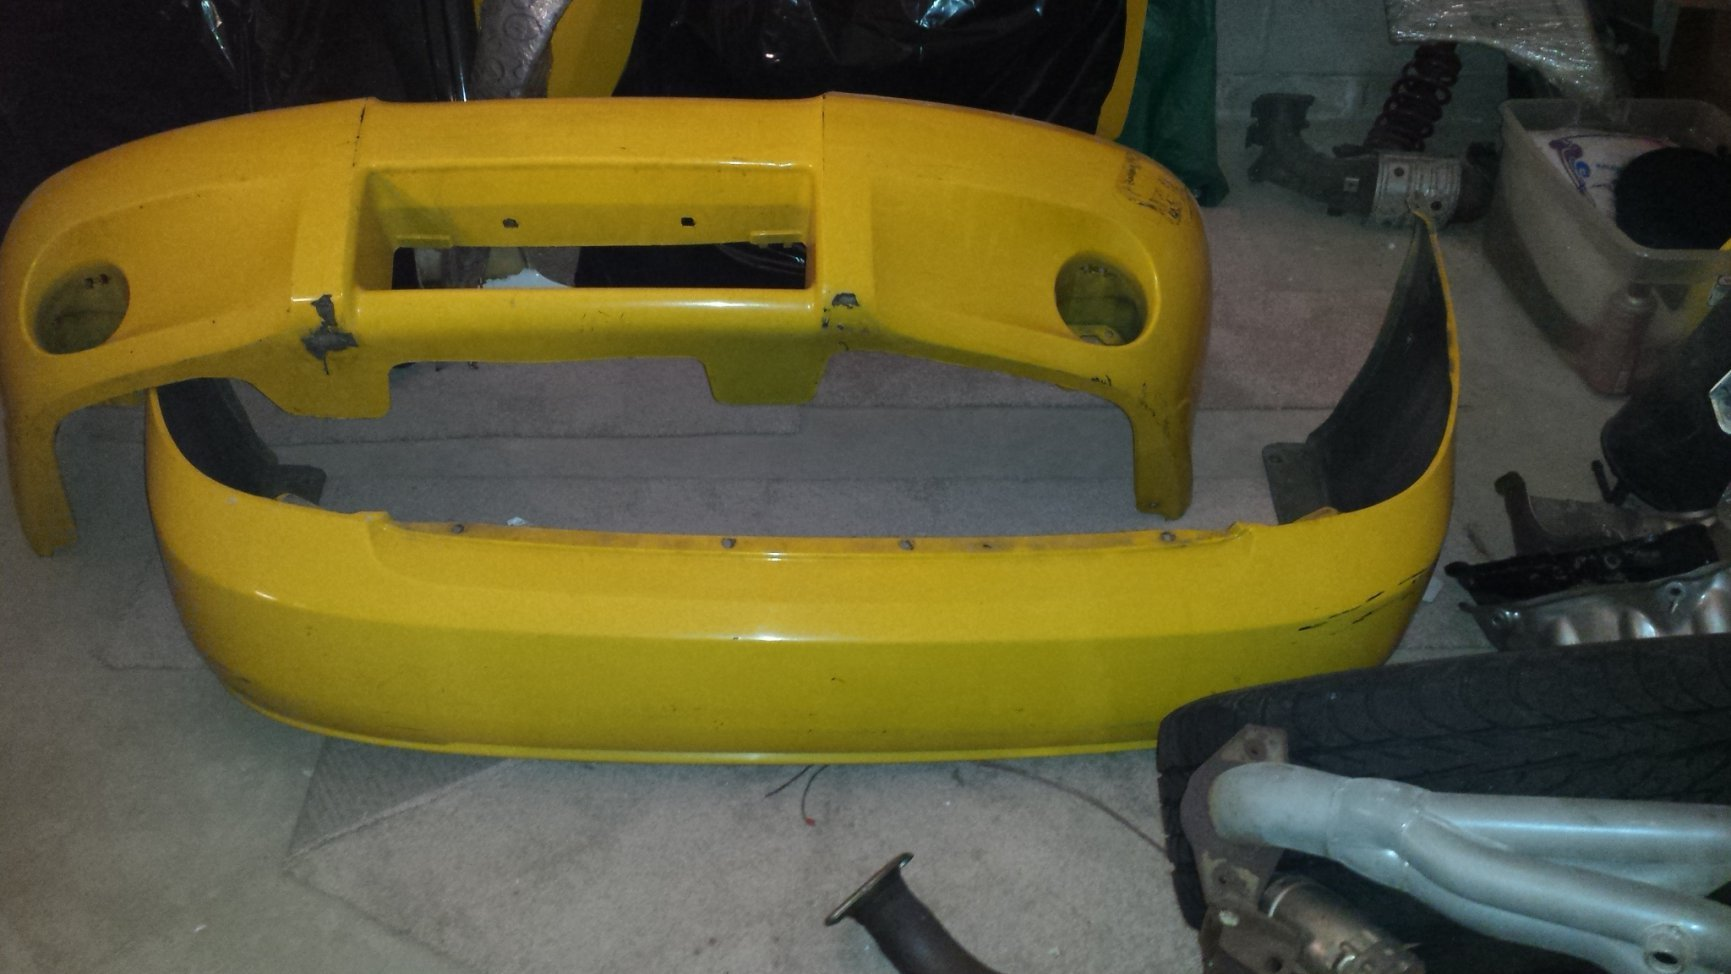 02-06 2003 Nissan Sentra SE-R limited edition Bumpers and ...